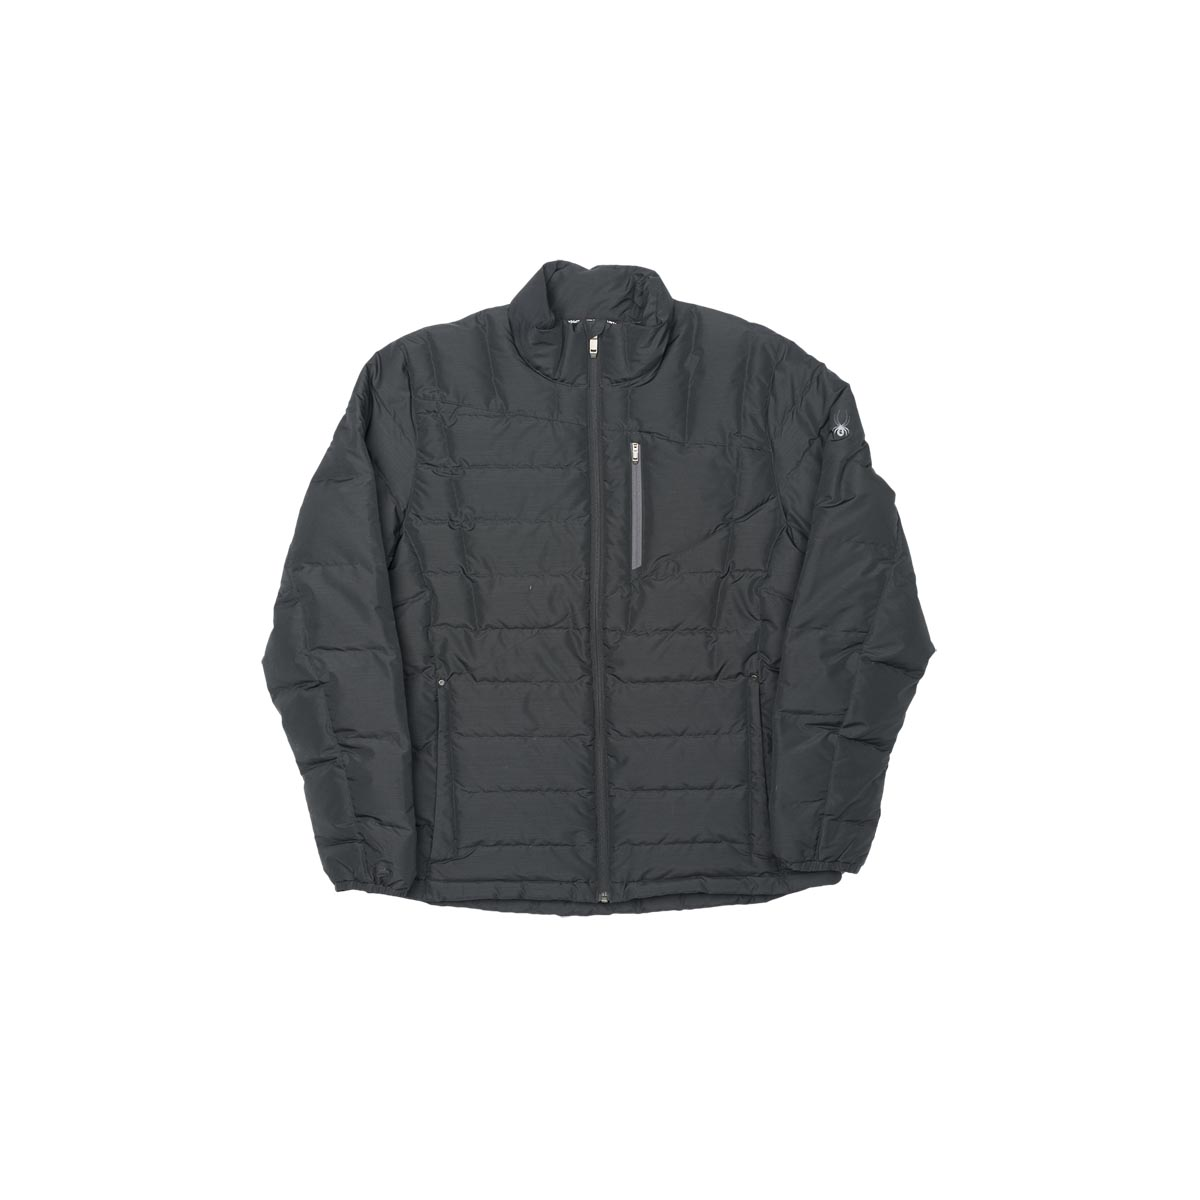 Spyder Men's Dolomite Full Zip Down Jacket